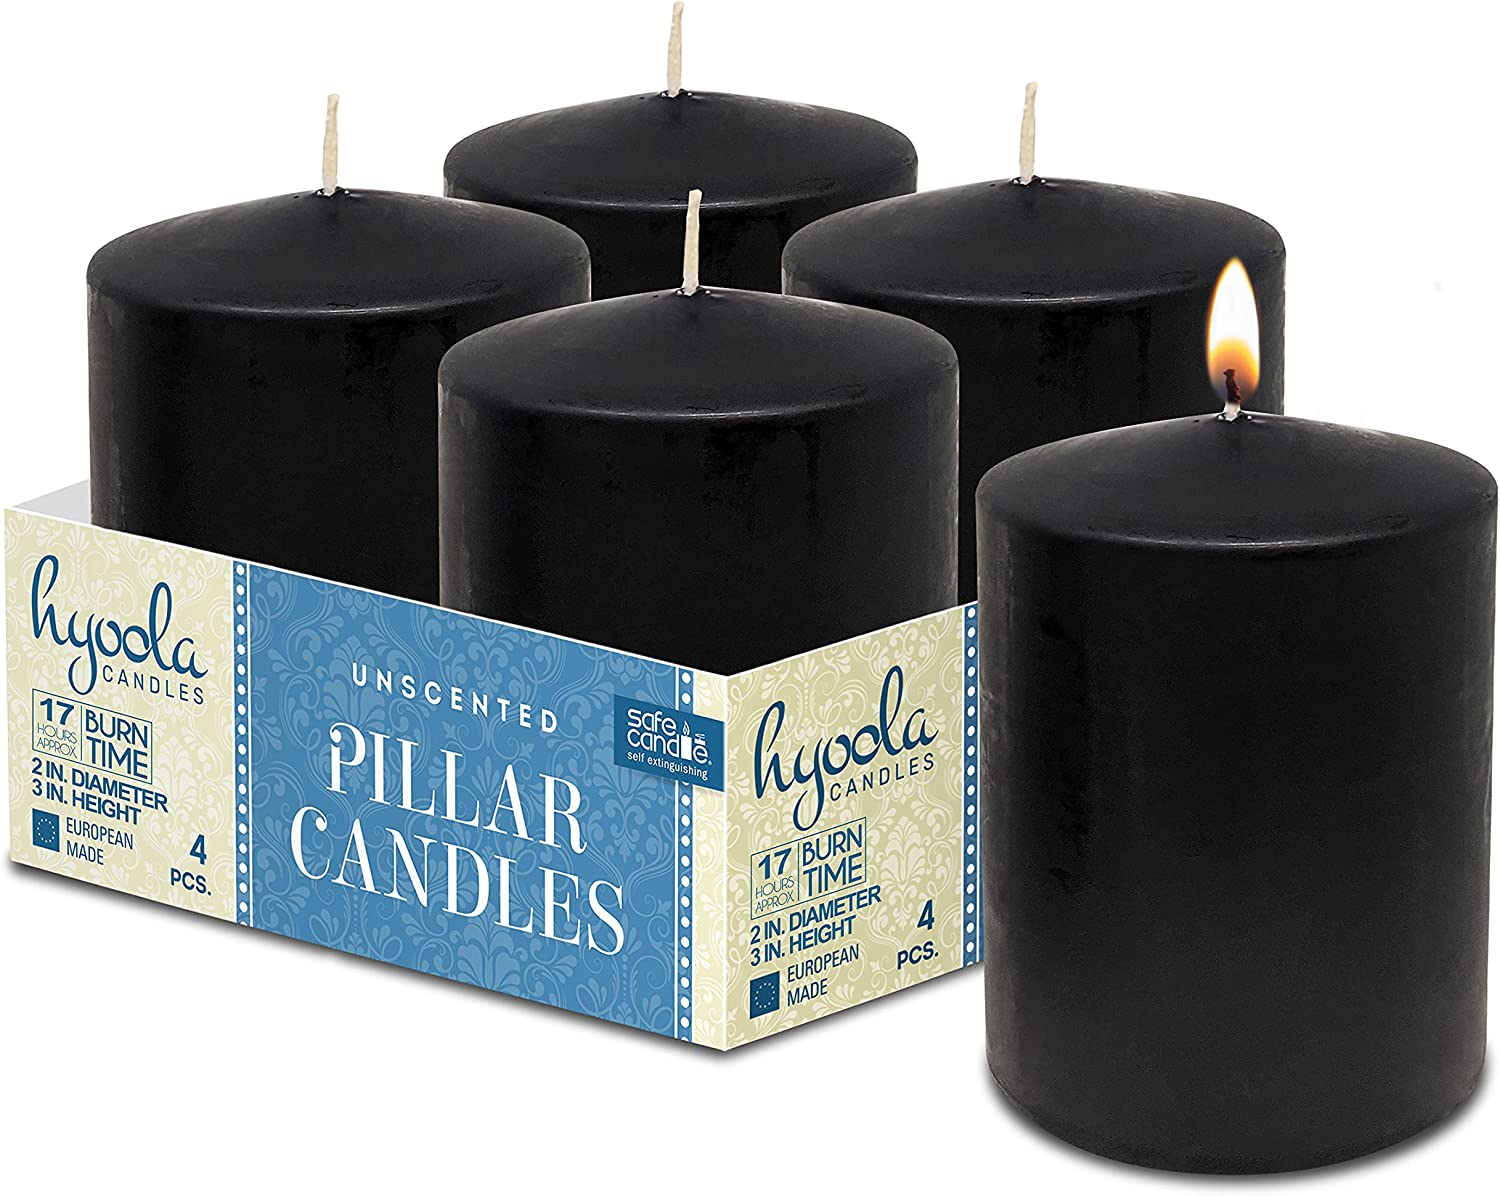 Dallas Mall Hyoola Black Pillar Candles 2x3 Inch Department store Unscented 4 C Pack -